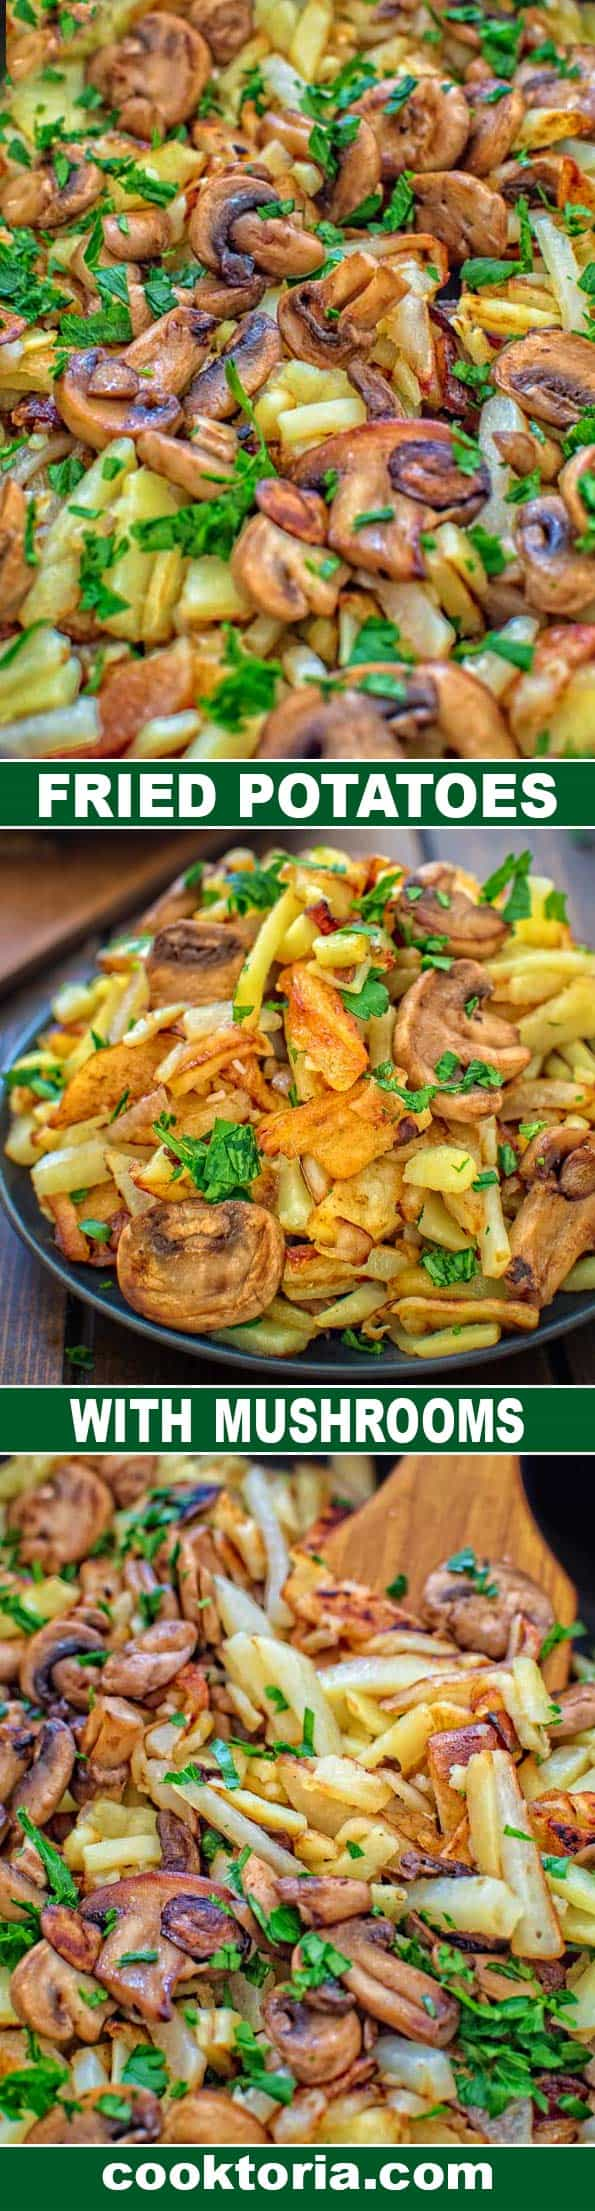 Incredibly tasty and so easy to make, these Fried Potatoes with Mushrooms will impress even the pickiest eater! ❤ COOKTORIA.COM ❤ COOKTORIA.COM